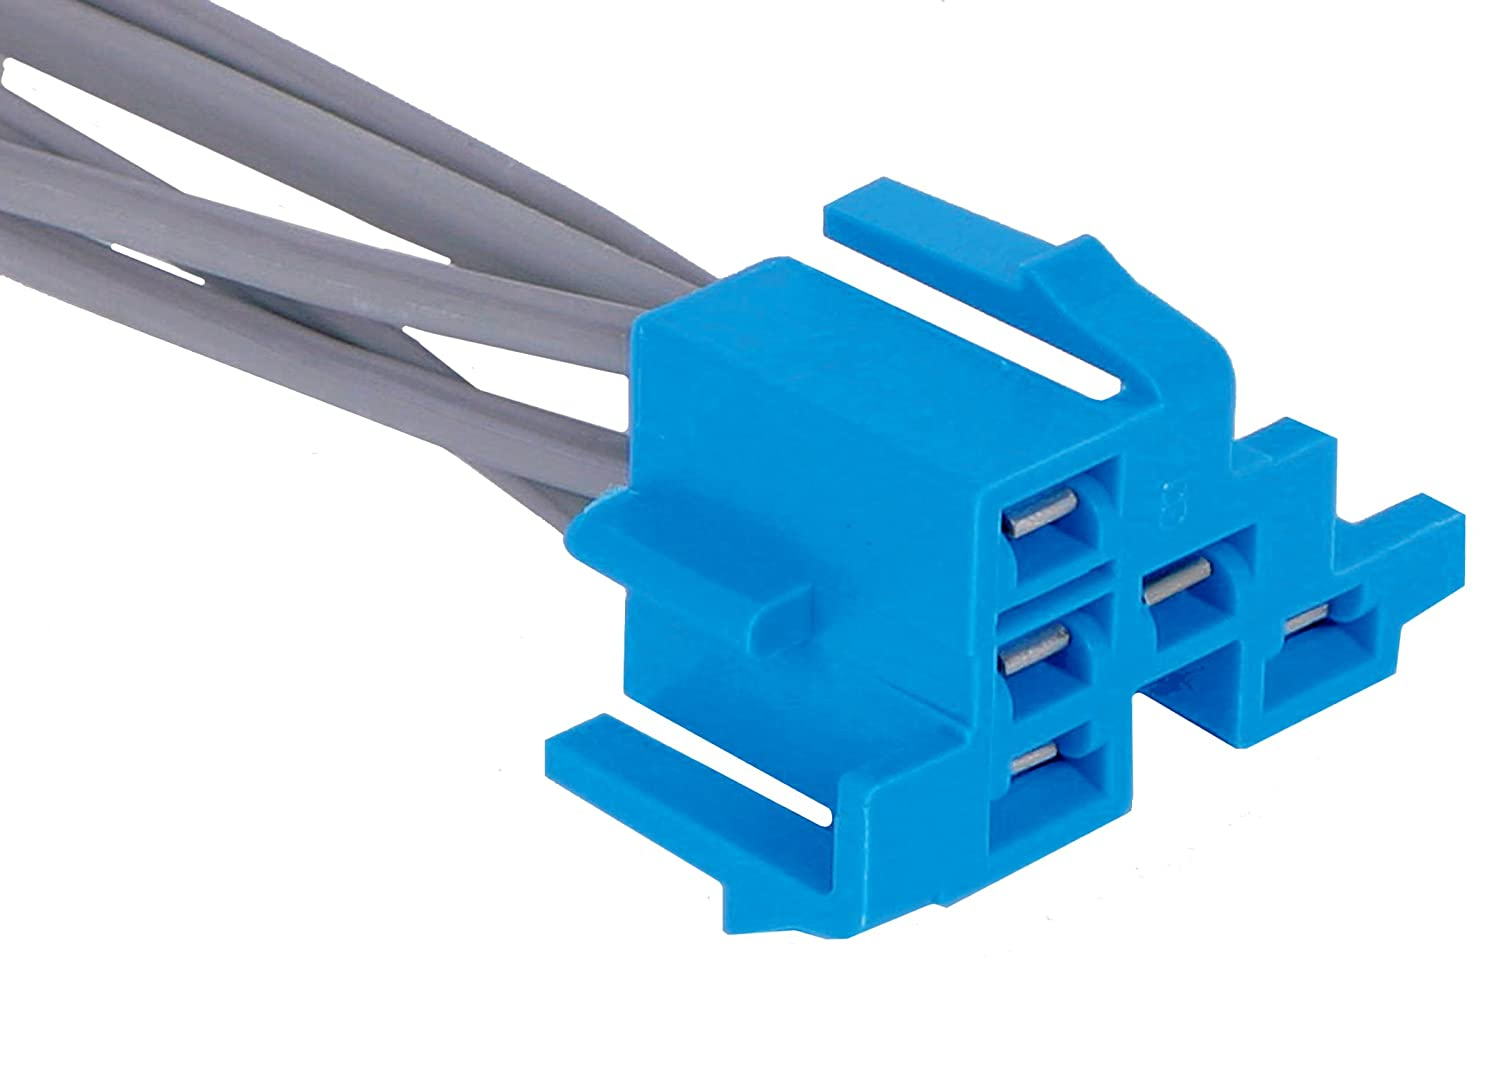 Acdelco Pt289 Gm Original Equipment 5 Way Female Blue Vehicle Wiring Pigtails Multi Purpose Pigtail Automotive